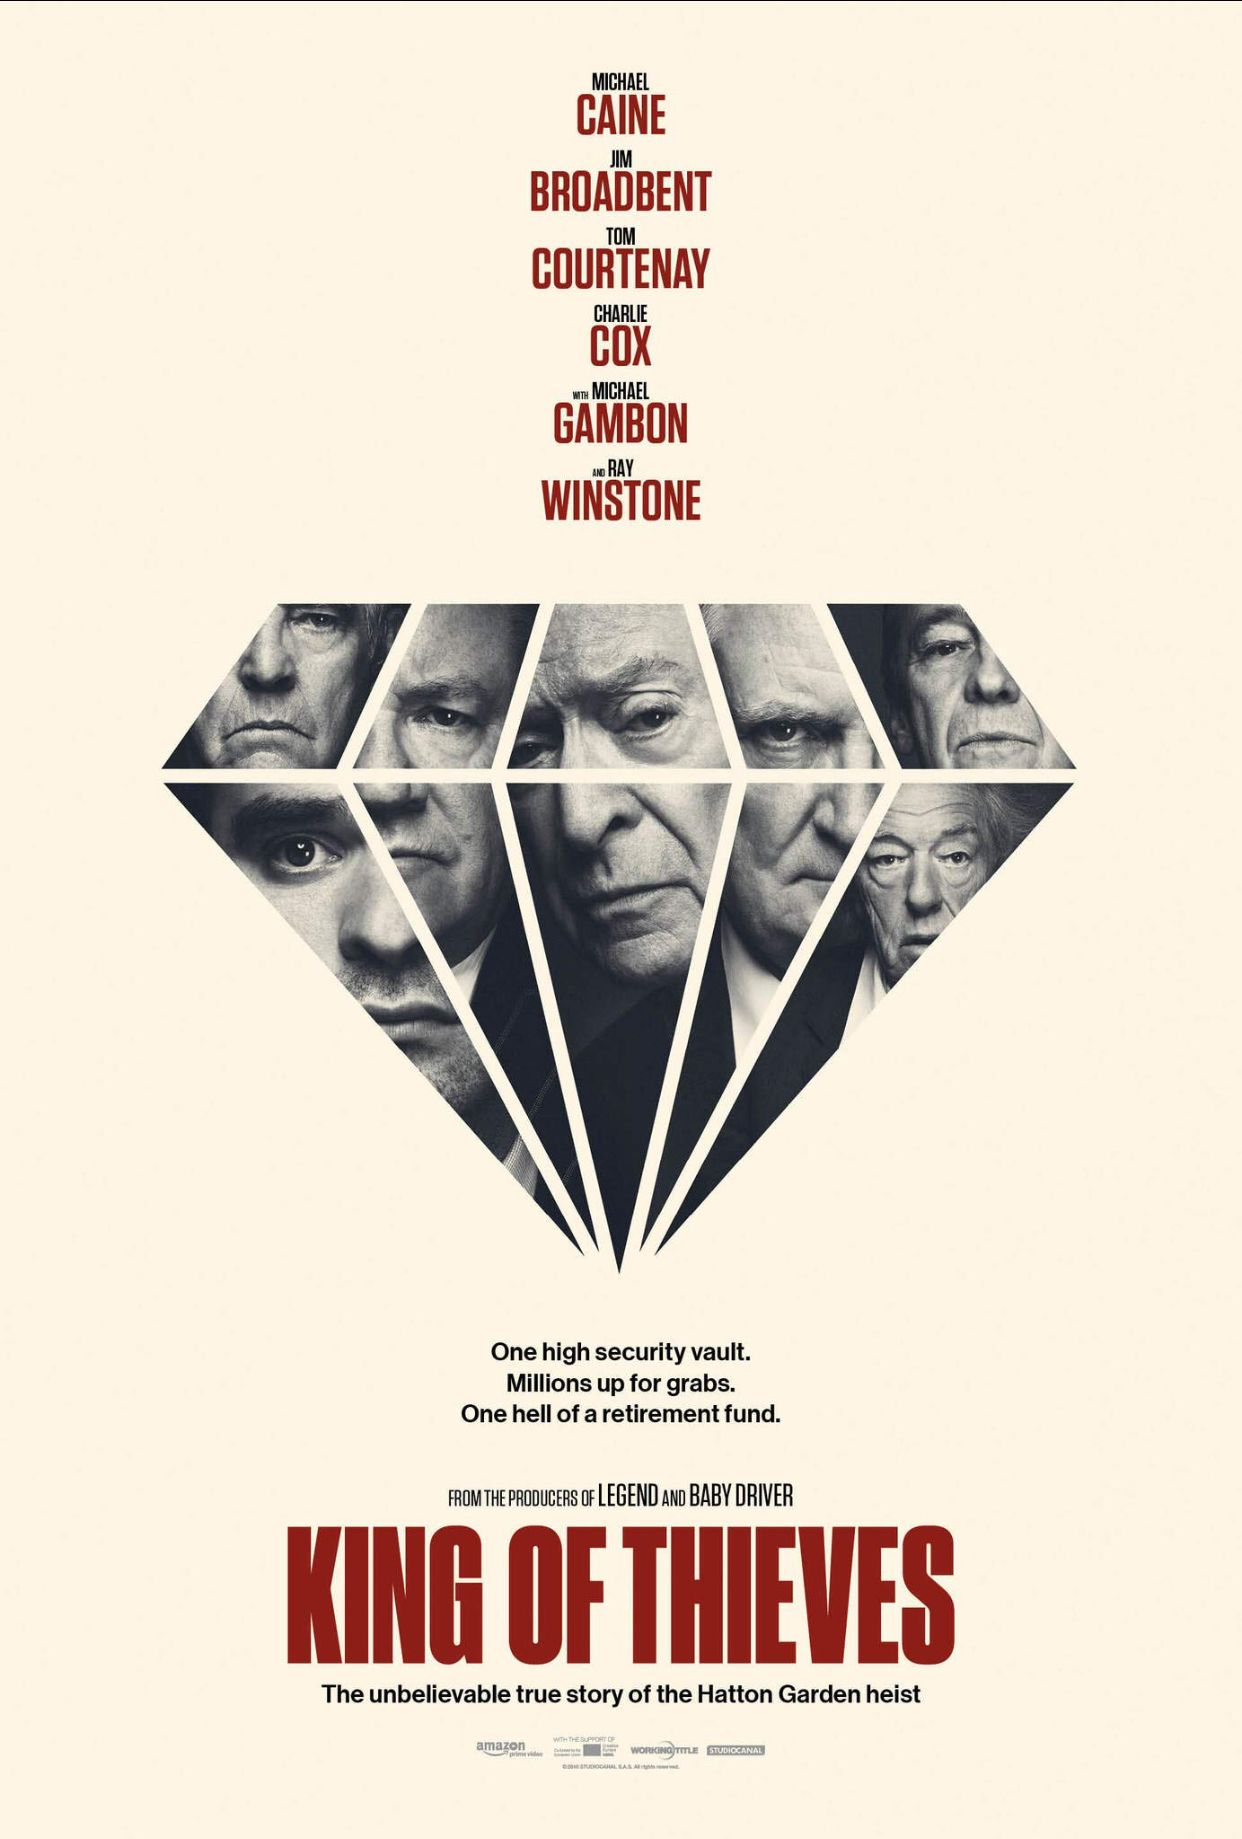 Pin By Arenukares On Movie Posters Thief Film Michael Gambon Full Movies